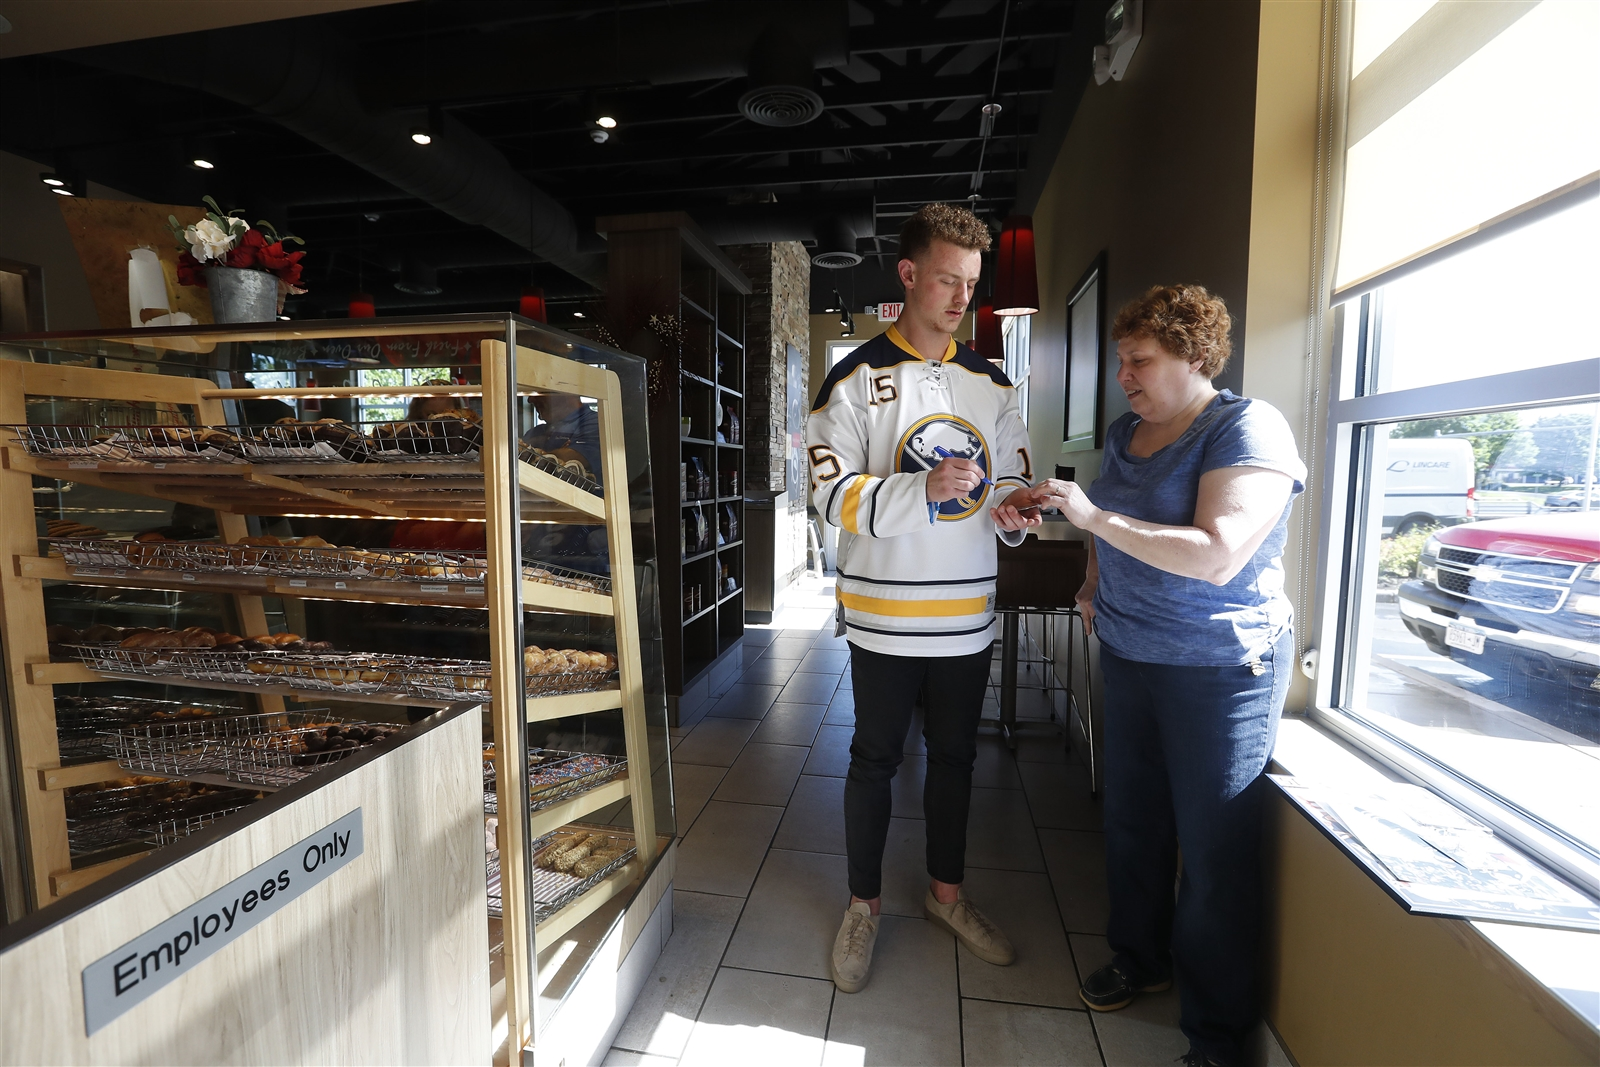 Buffalo Sabres forward Jack Eichel signs an autograph for Angie Schmitz at the Tim Hortons on Big Tree Road in Orchard Park on Wednesday, May 31, 2017.